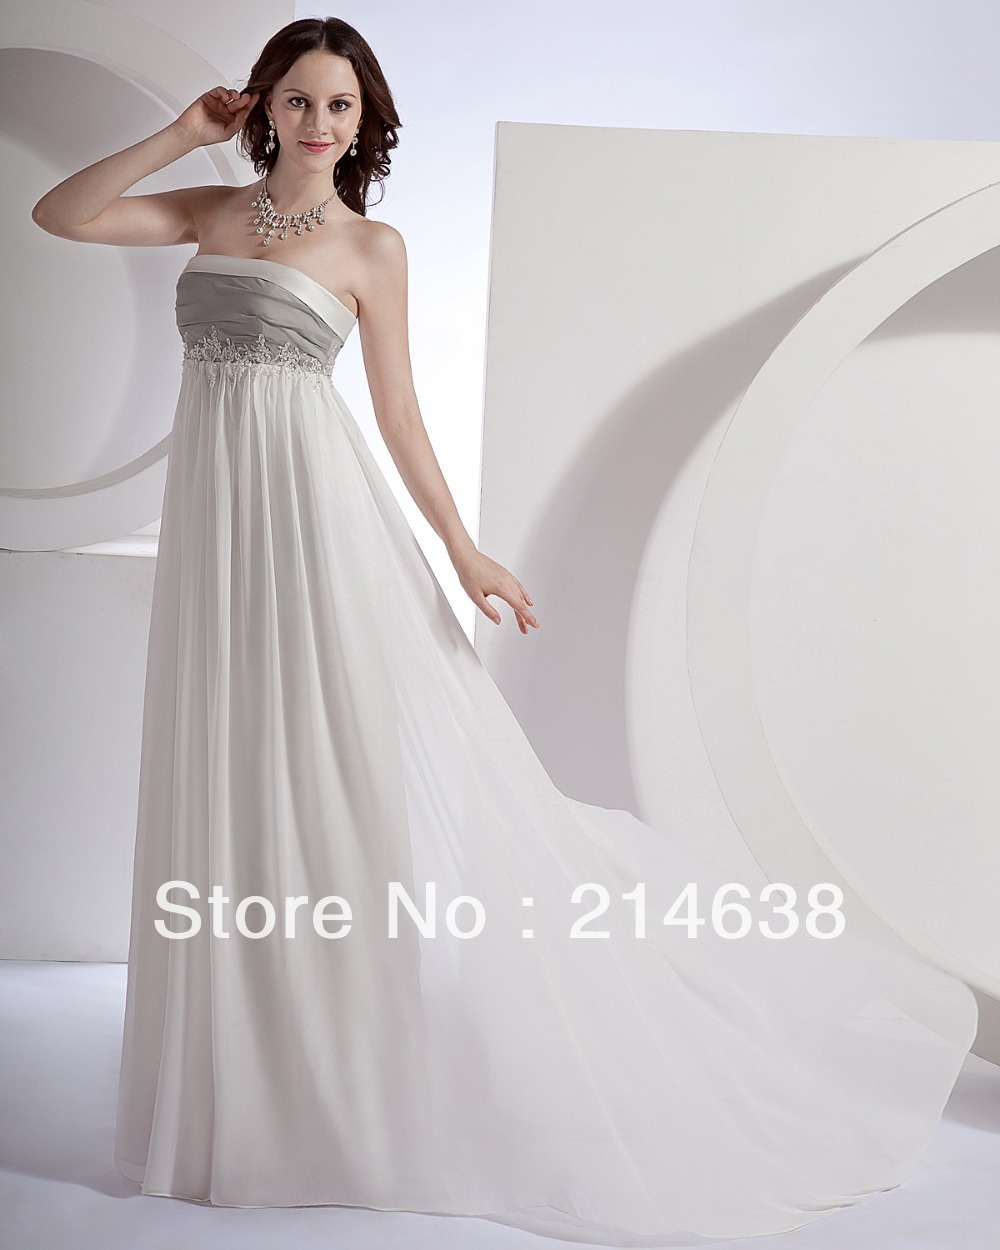 maternity bridesmaid dress hire uk discount wedding dresses